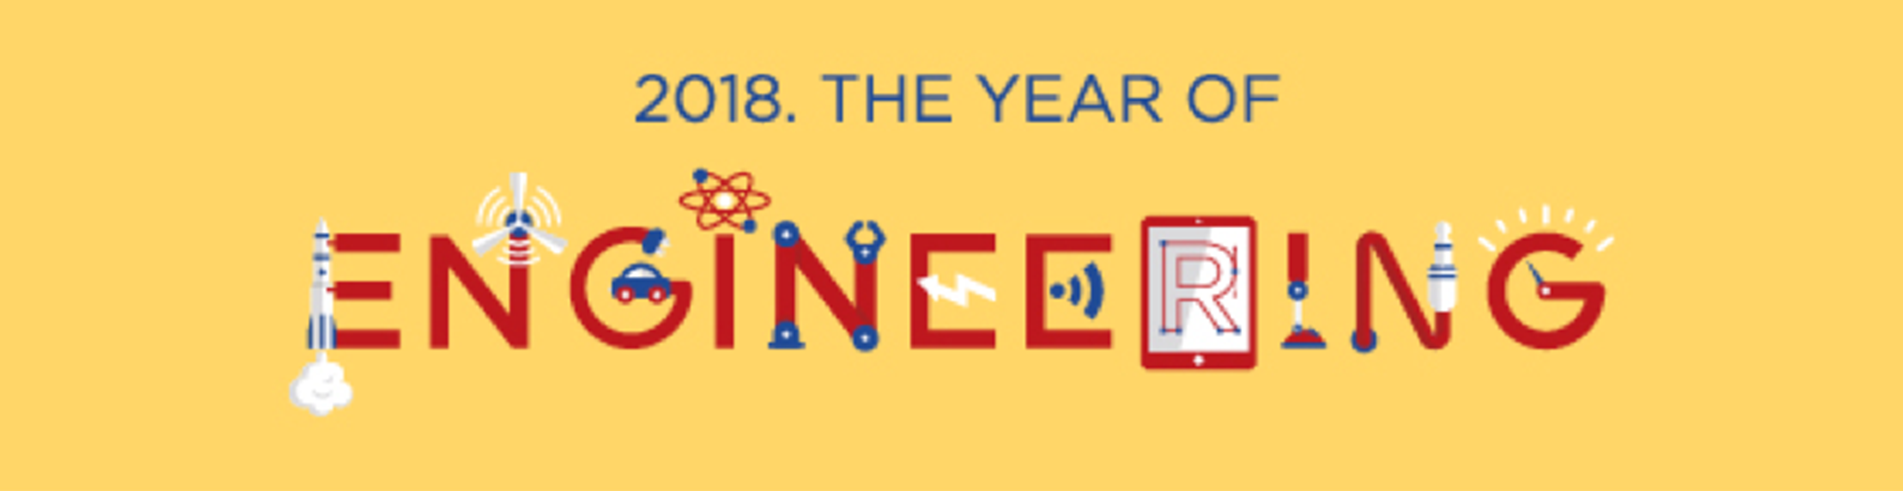 2018 The Year of Engineering logo